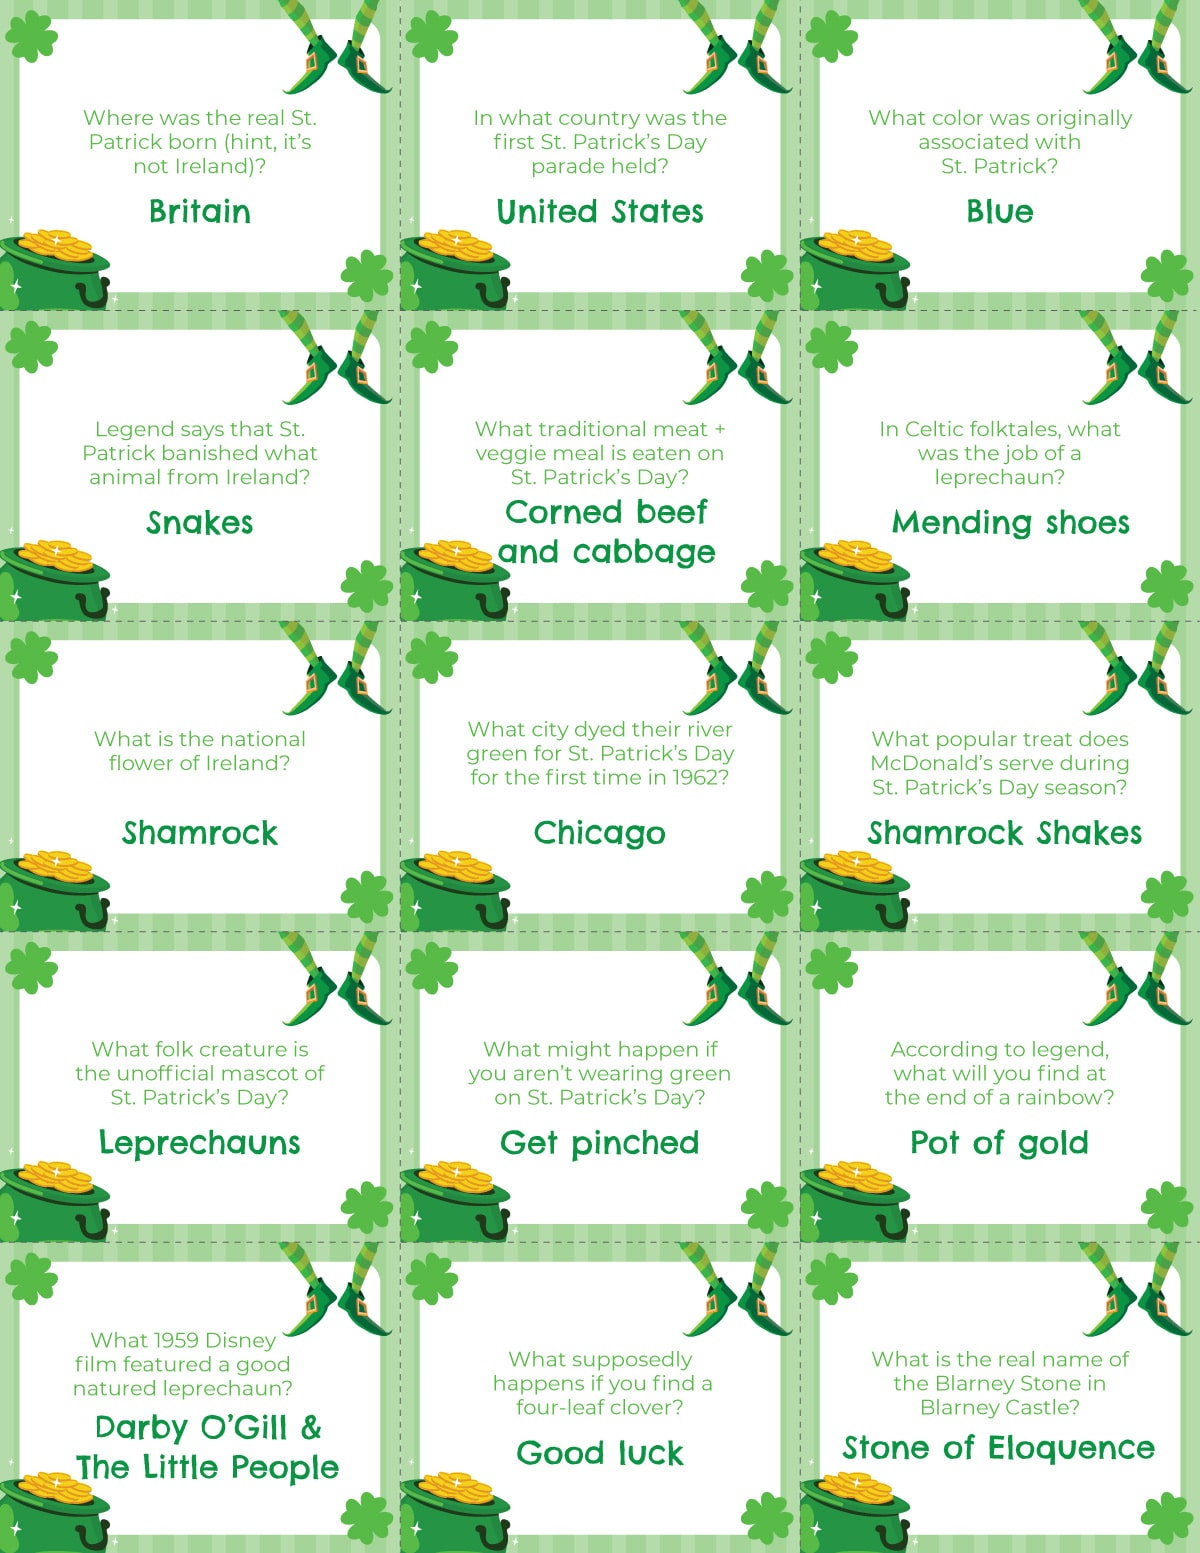 St. Patrick's Day trivia questions